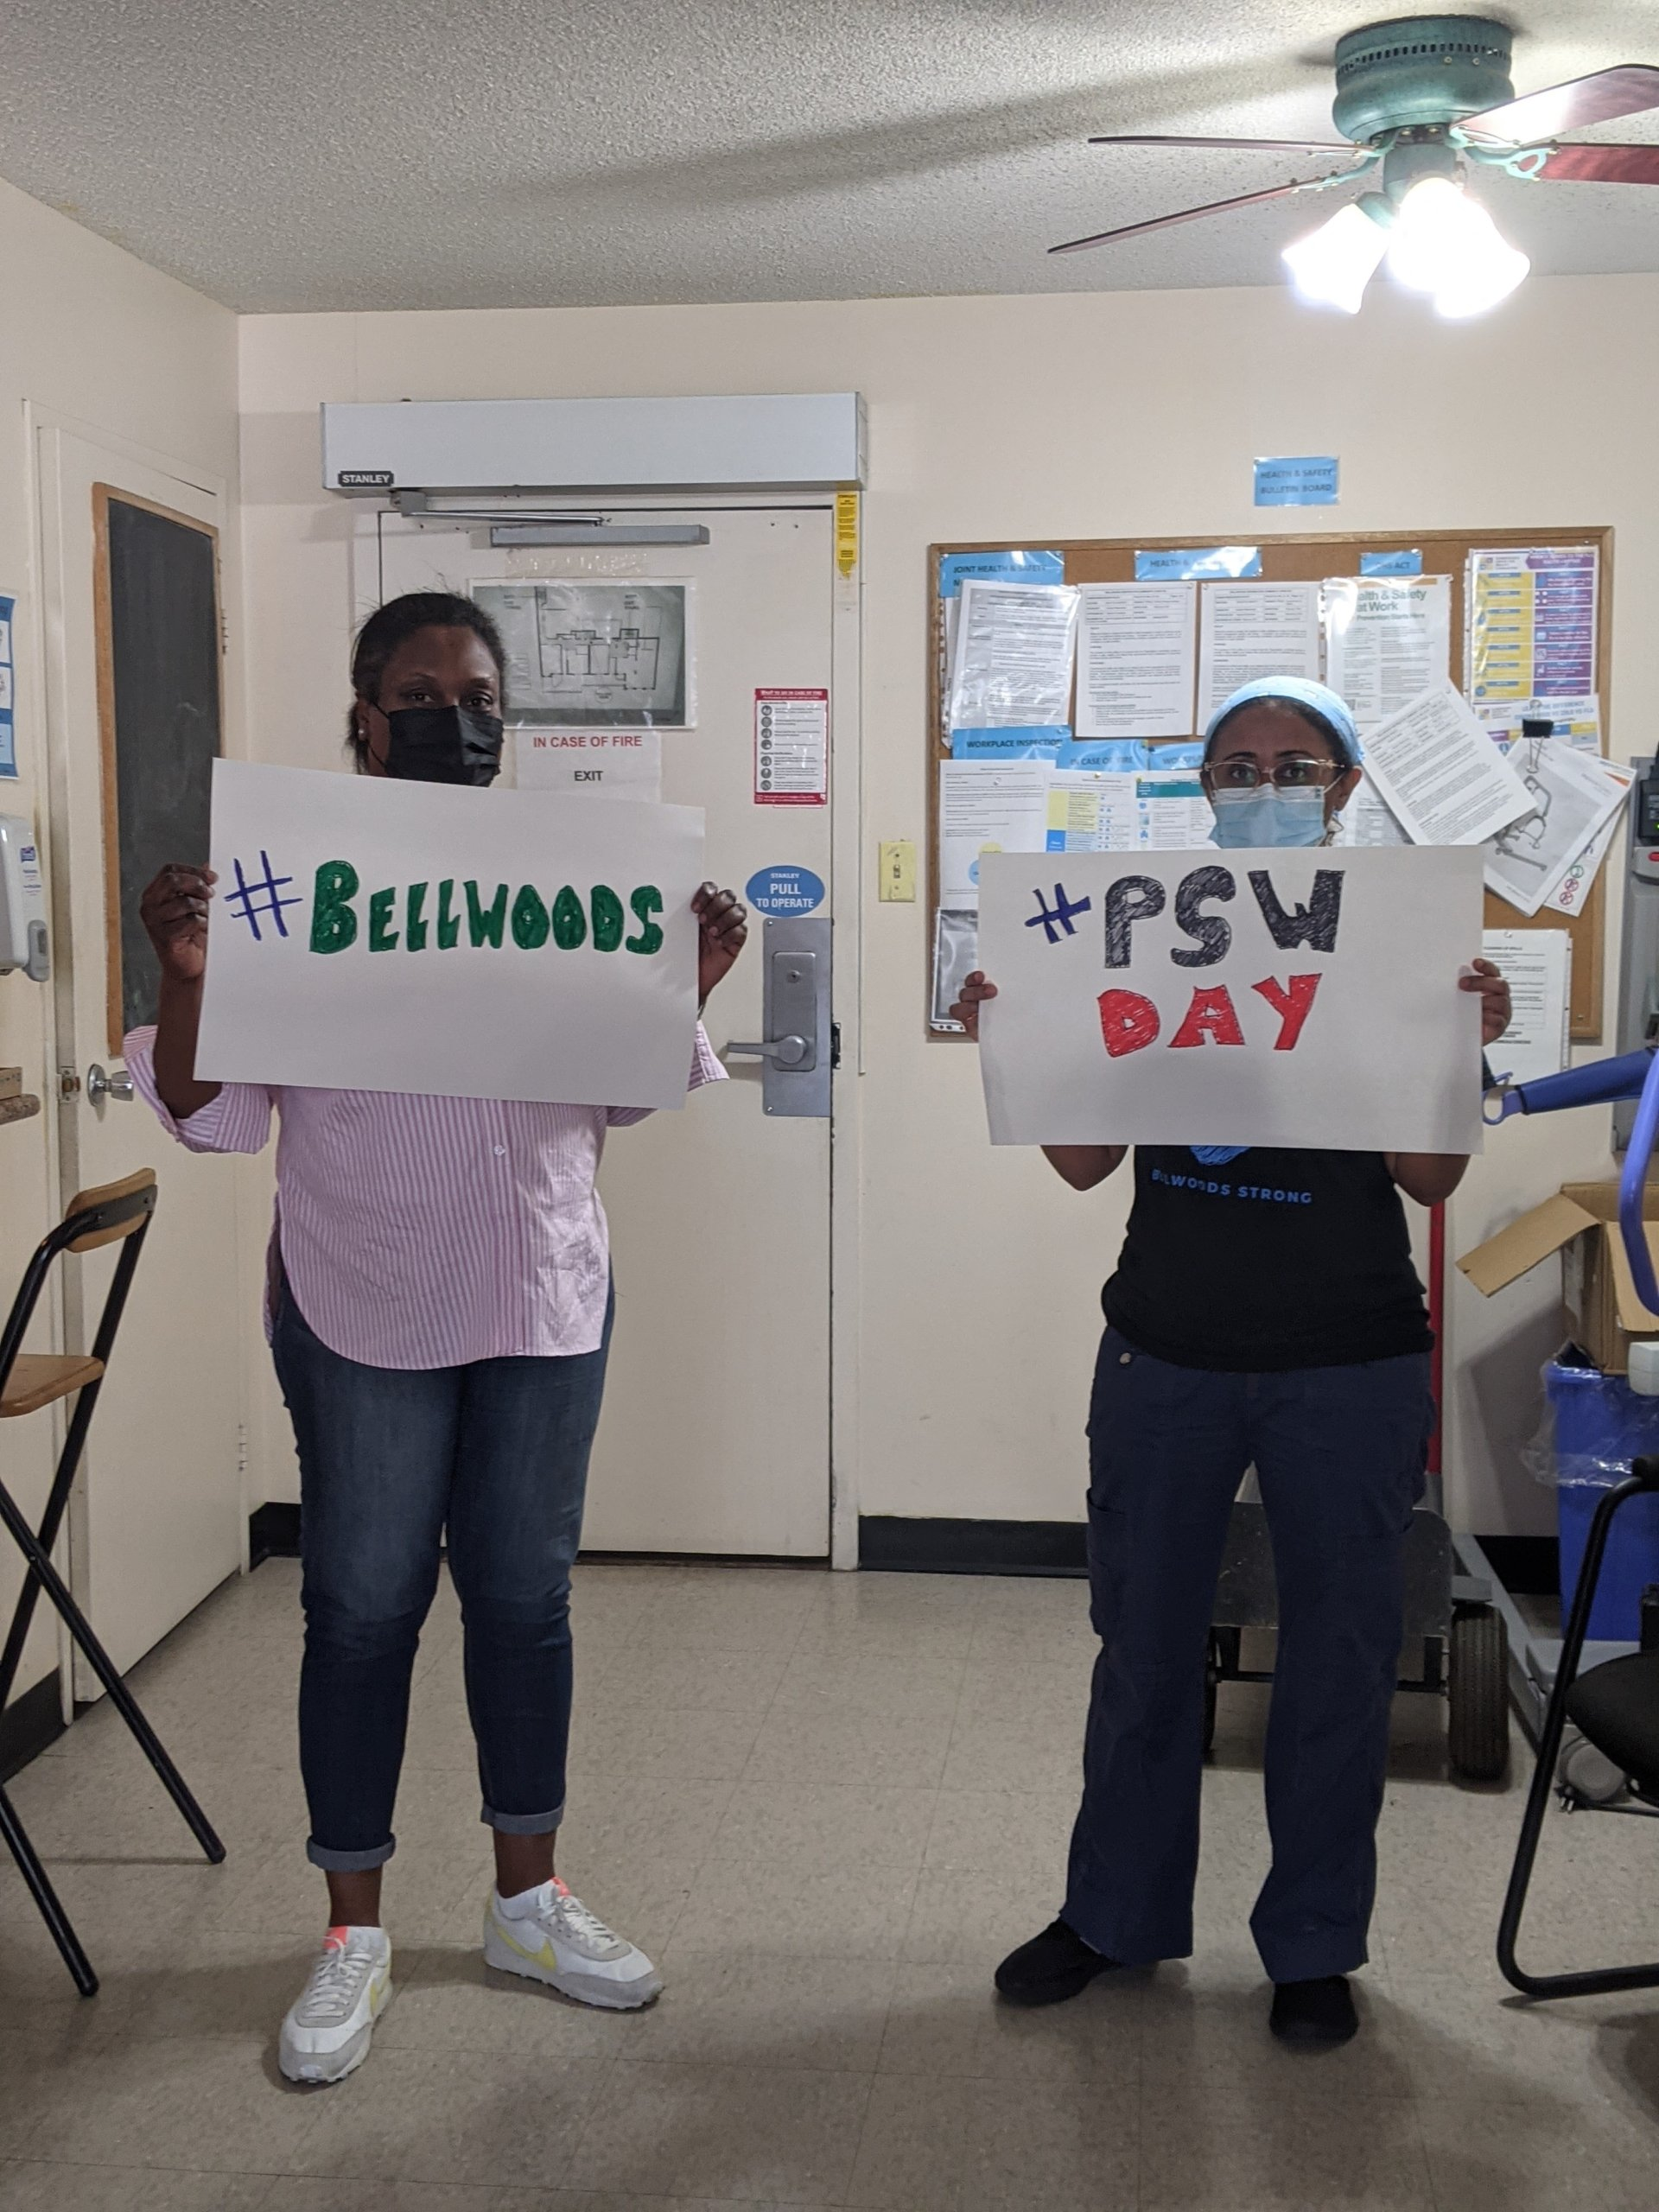 Bellwoods staff holds up signs #Bellwoods and #PSW Day